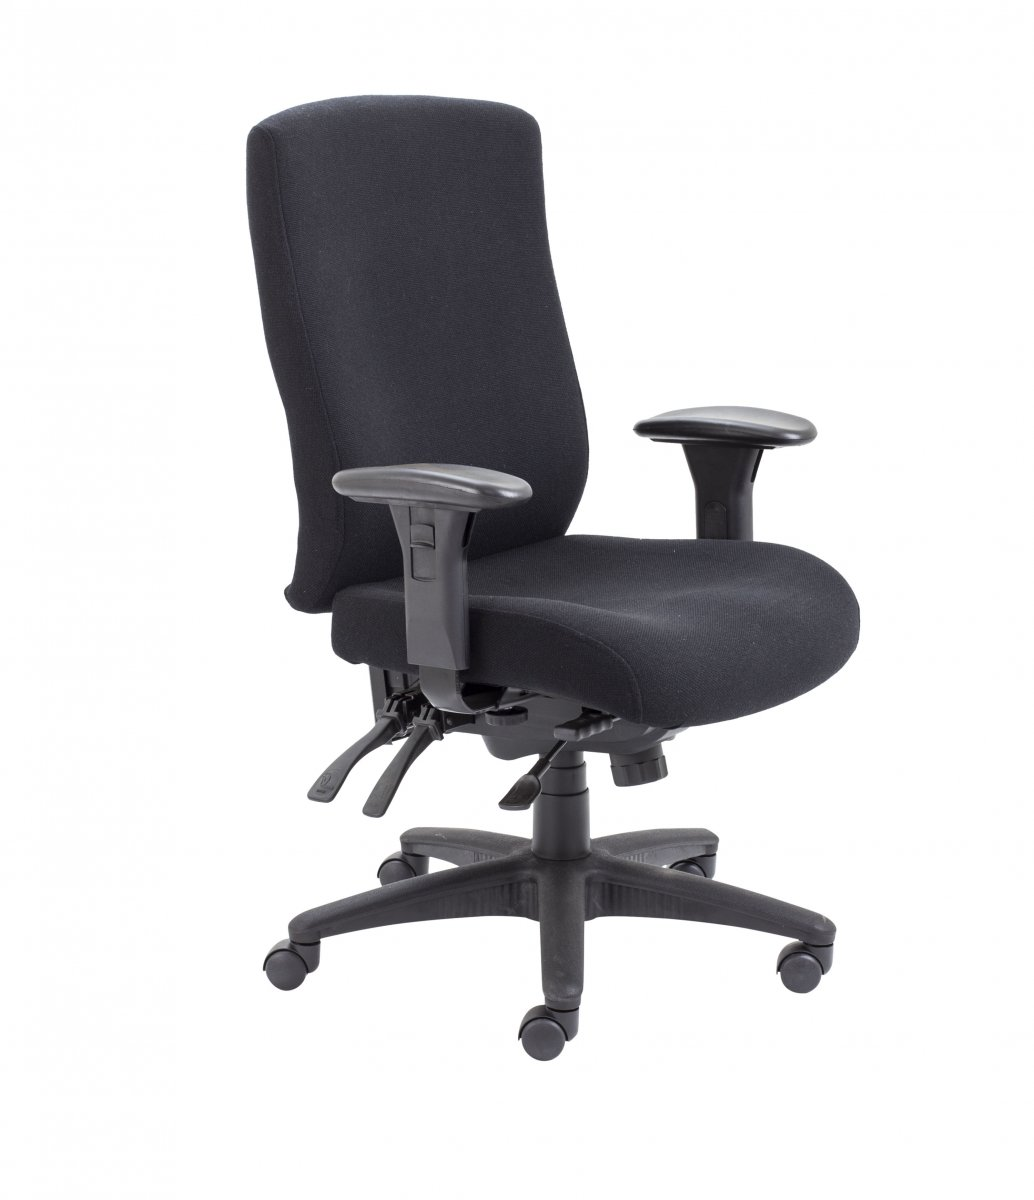 Marathon Fabric High Back Heavy Duty Chair - Black